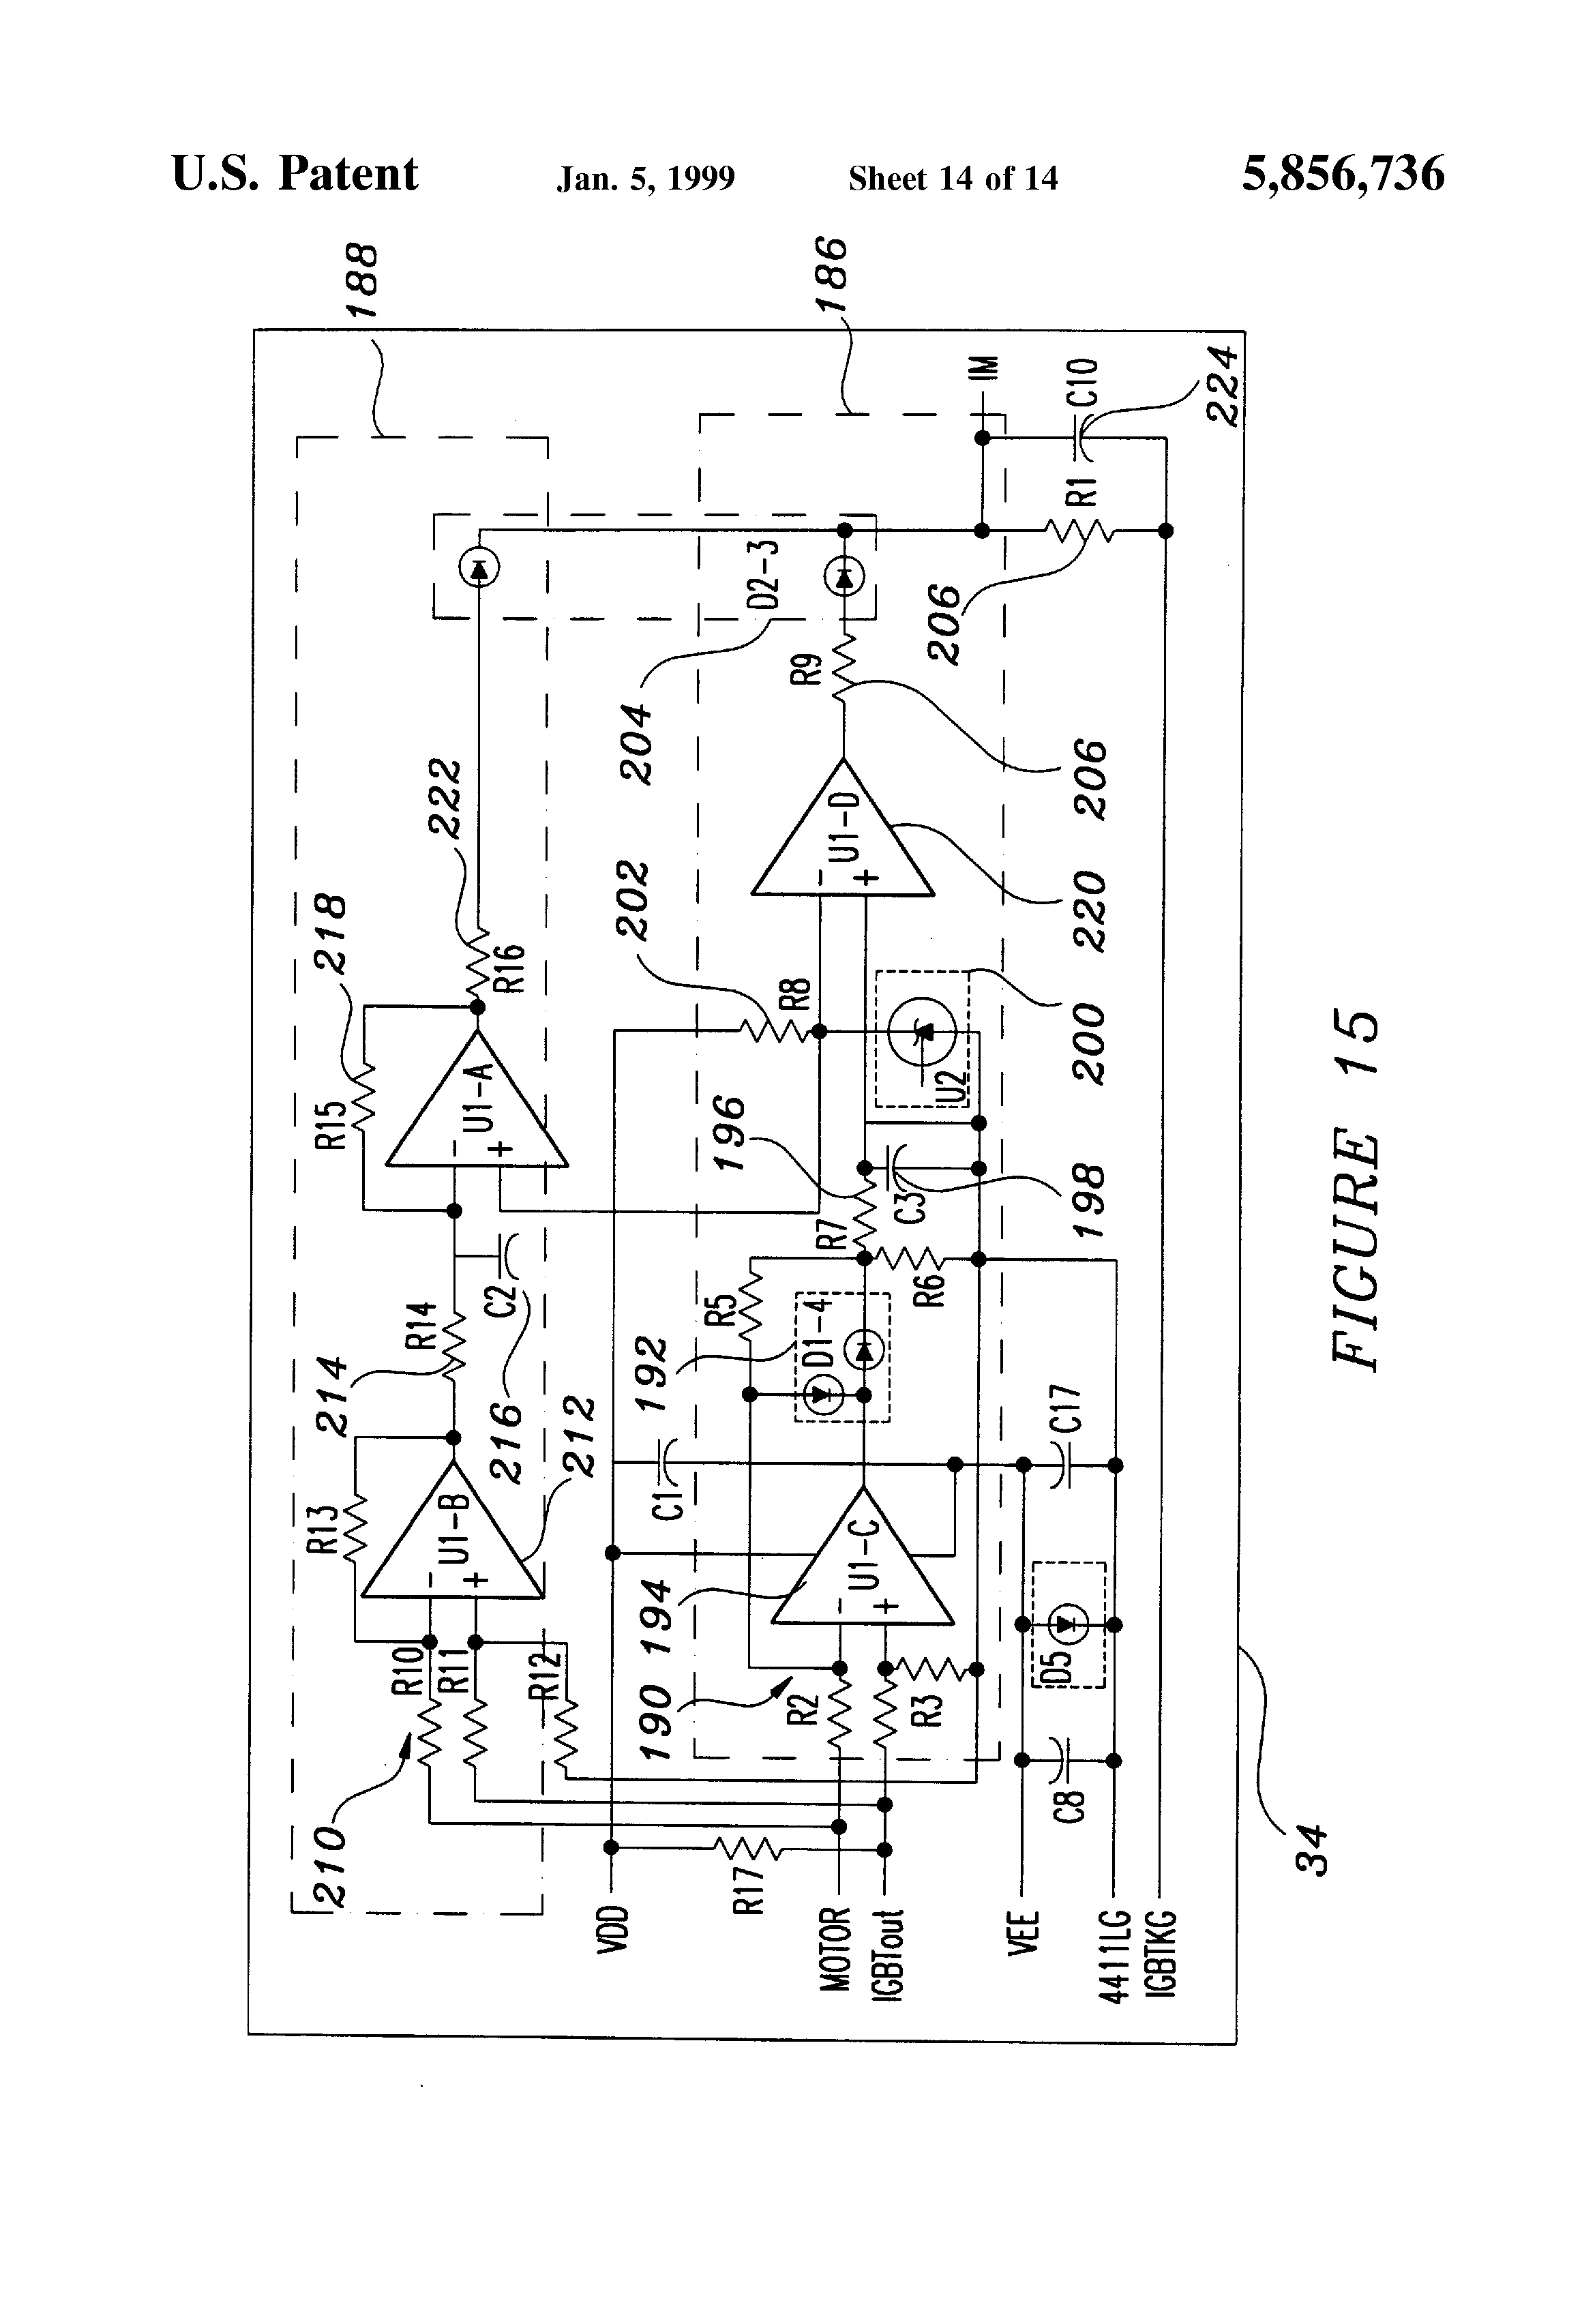 treadmill motor wiring diagram testing procedures treadmill patent us5856736 variable speed ac motor drive for treadmill on treadmill motor wiring diagram testing